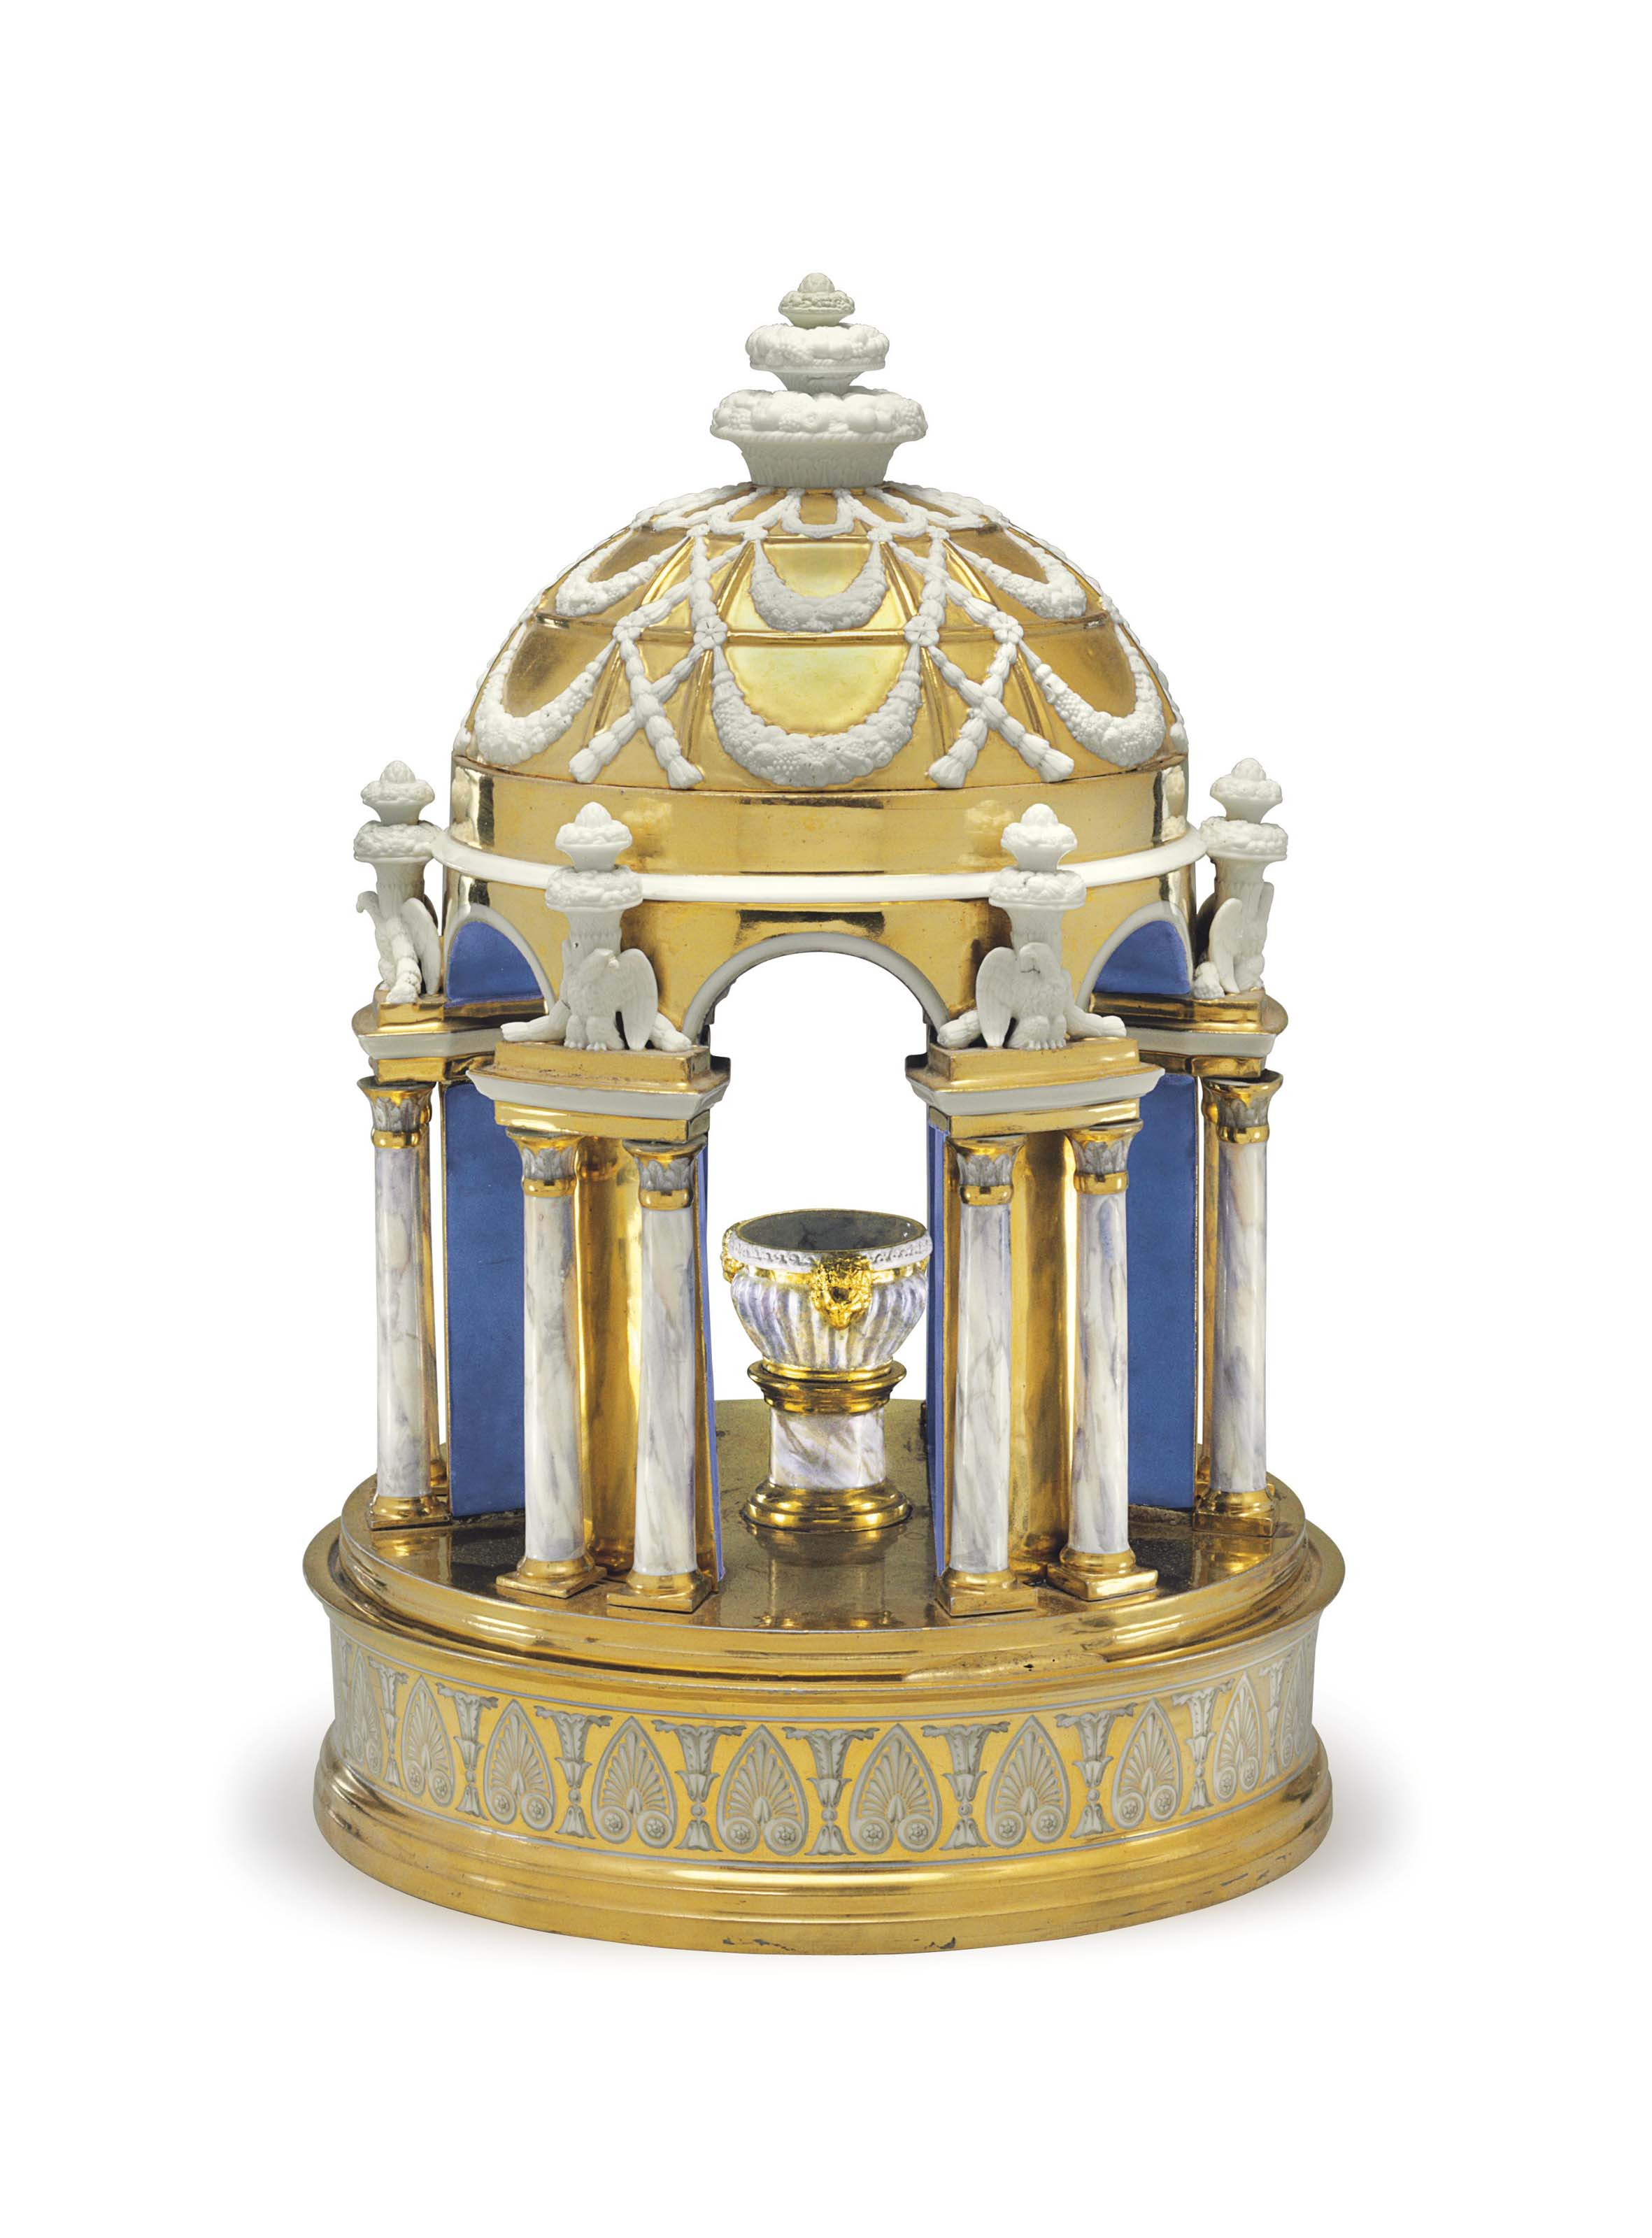 A PARIS (DARTE FRERES) PORCELAIN CIRCULAR TEMPLE